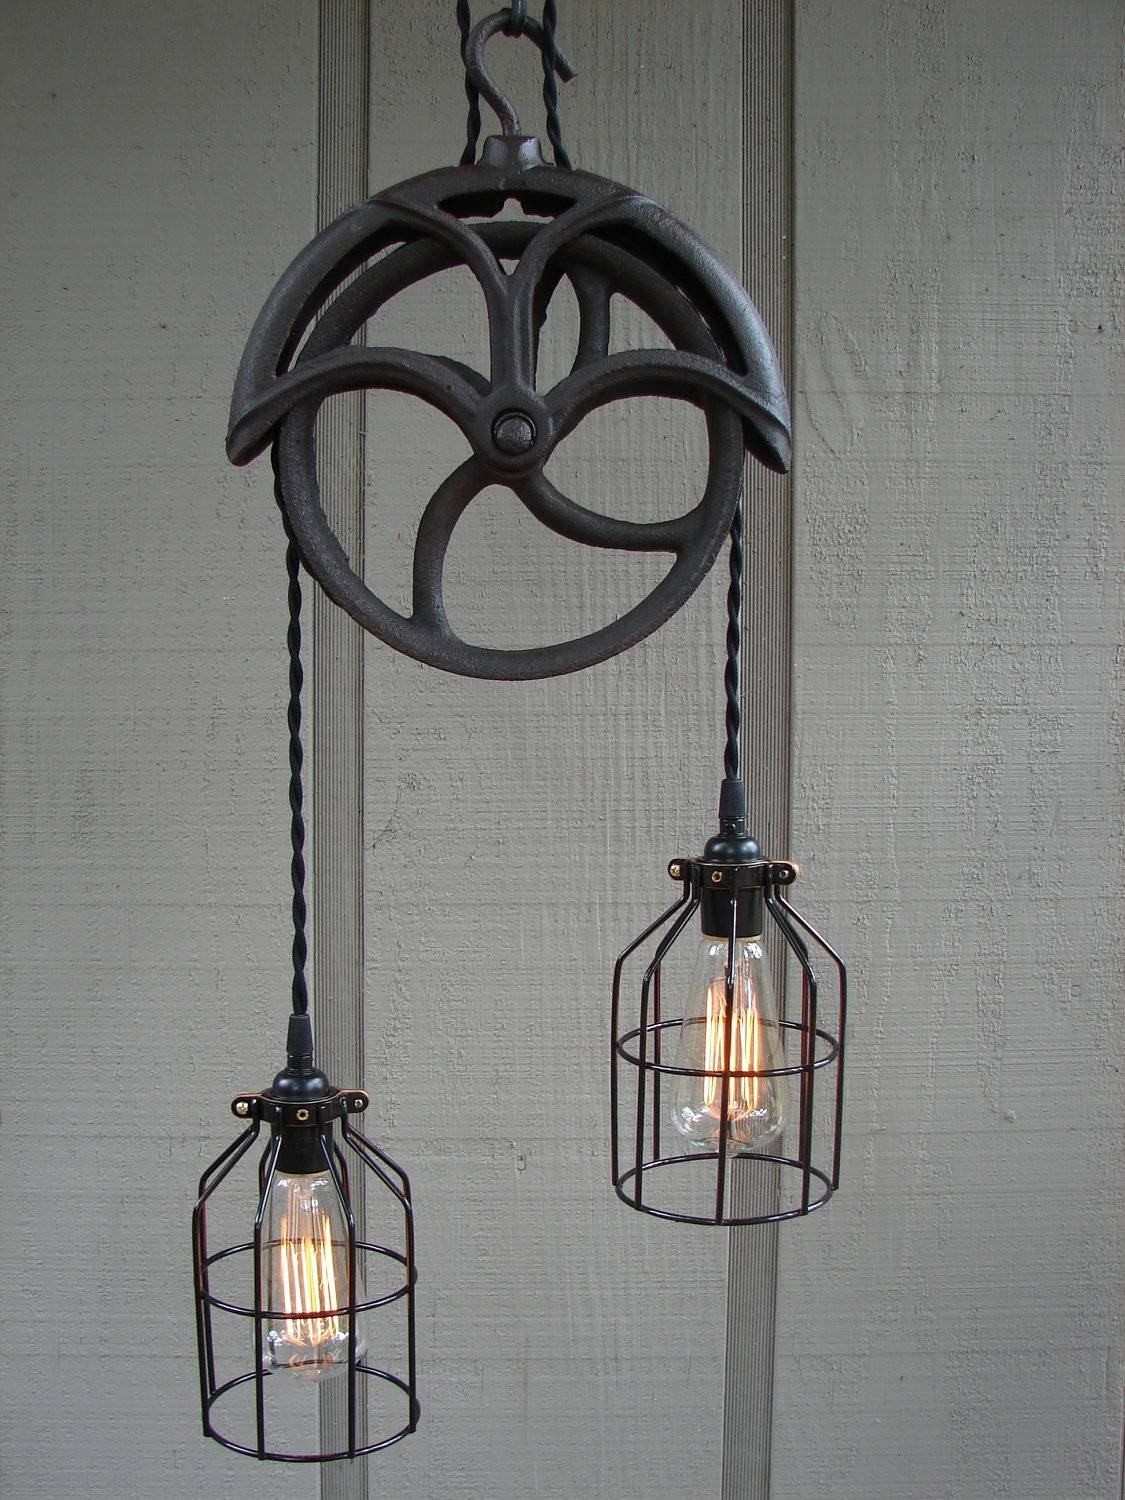 Lighting Design Ideas: Pulley Pendant Light Fixture Adjustable pertaining to Pulley Lights Fixtures (Image 9 of 15)